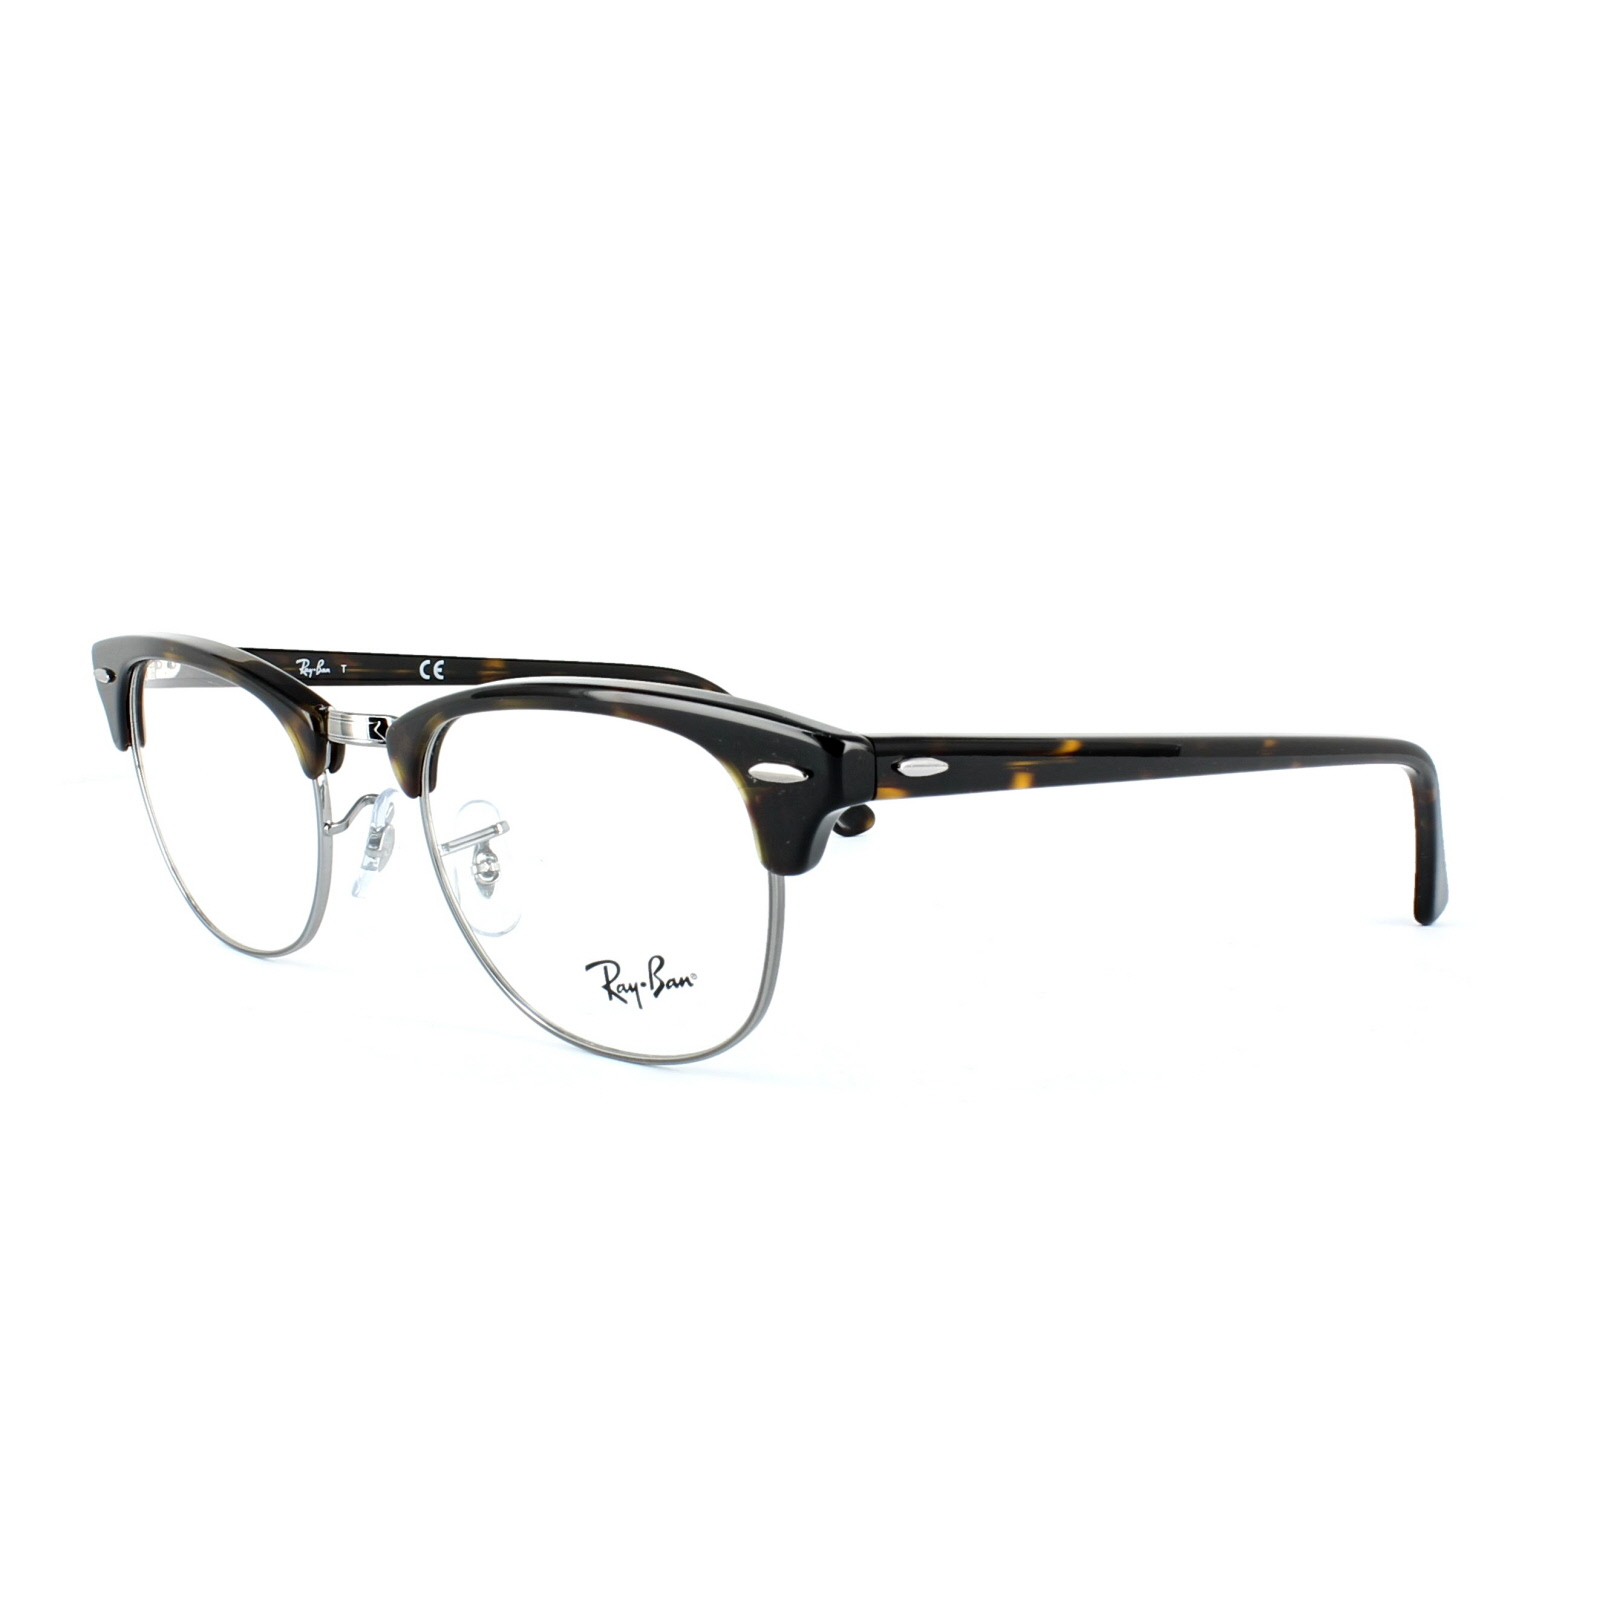 ed60cab74c4 Ray Ban Ophthalmic Frames 5154